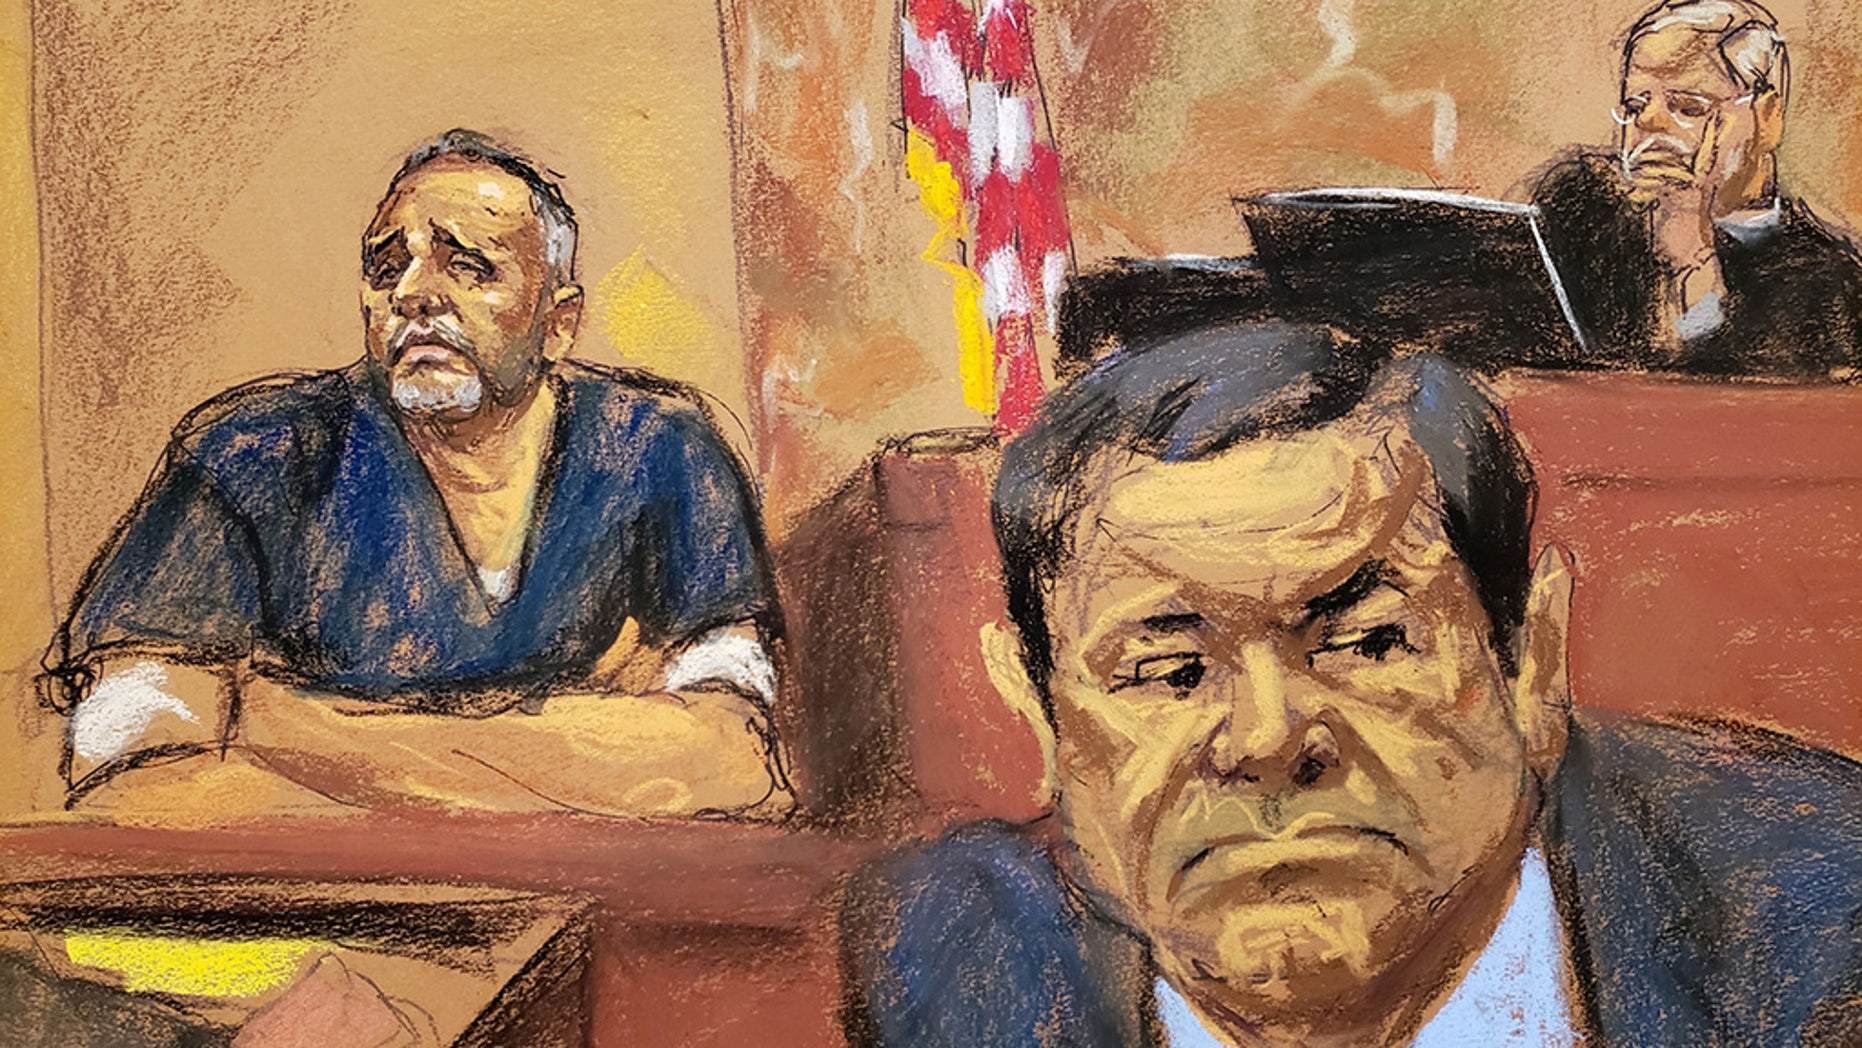 'El Chapo' paid former Mexico president $100m bribe, says trial witness